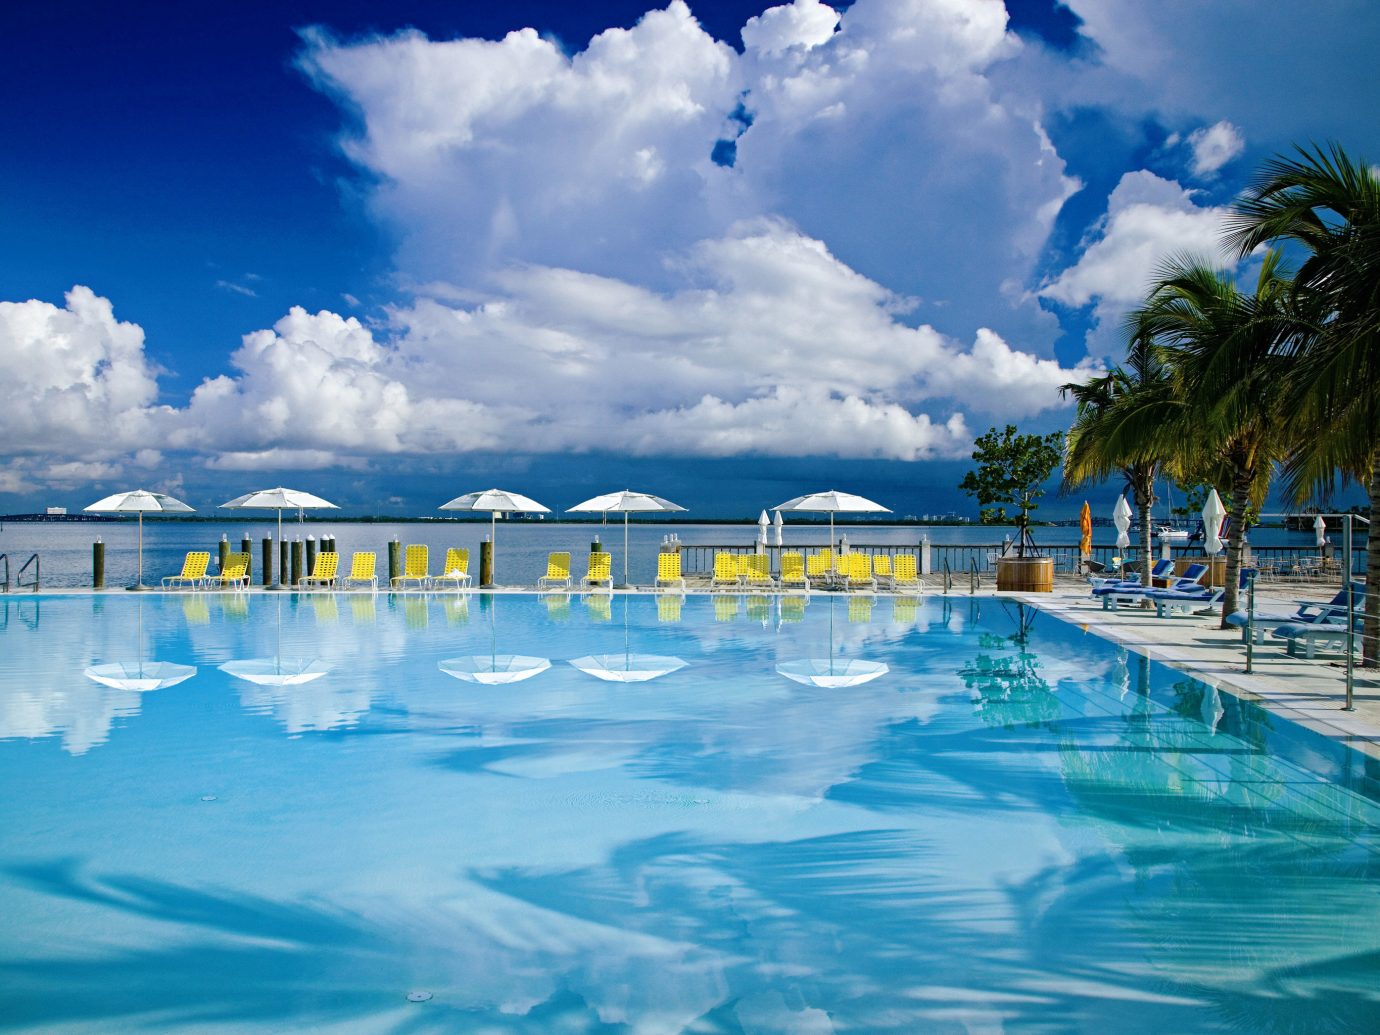 Trip Ideas sky outdoor swimming pool leisure Resort Pool Ocean vacation Sea Lagoon resort town blue estate reflection caribbean swimming day